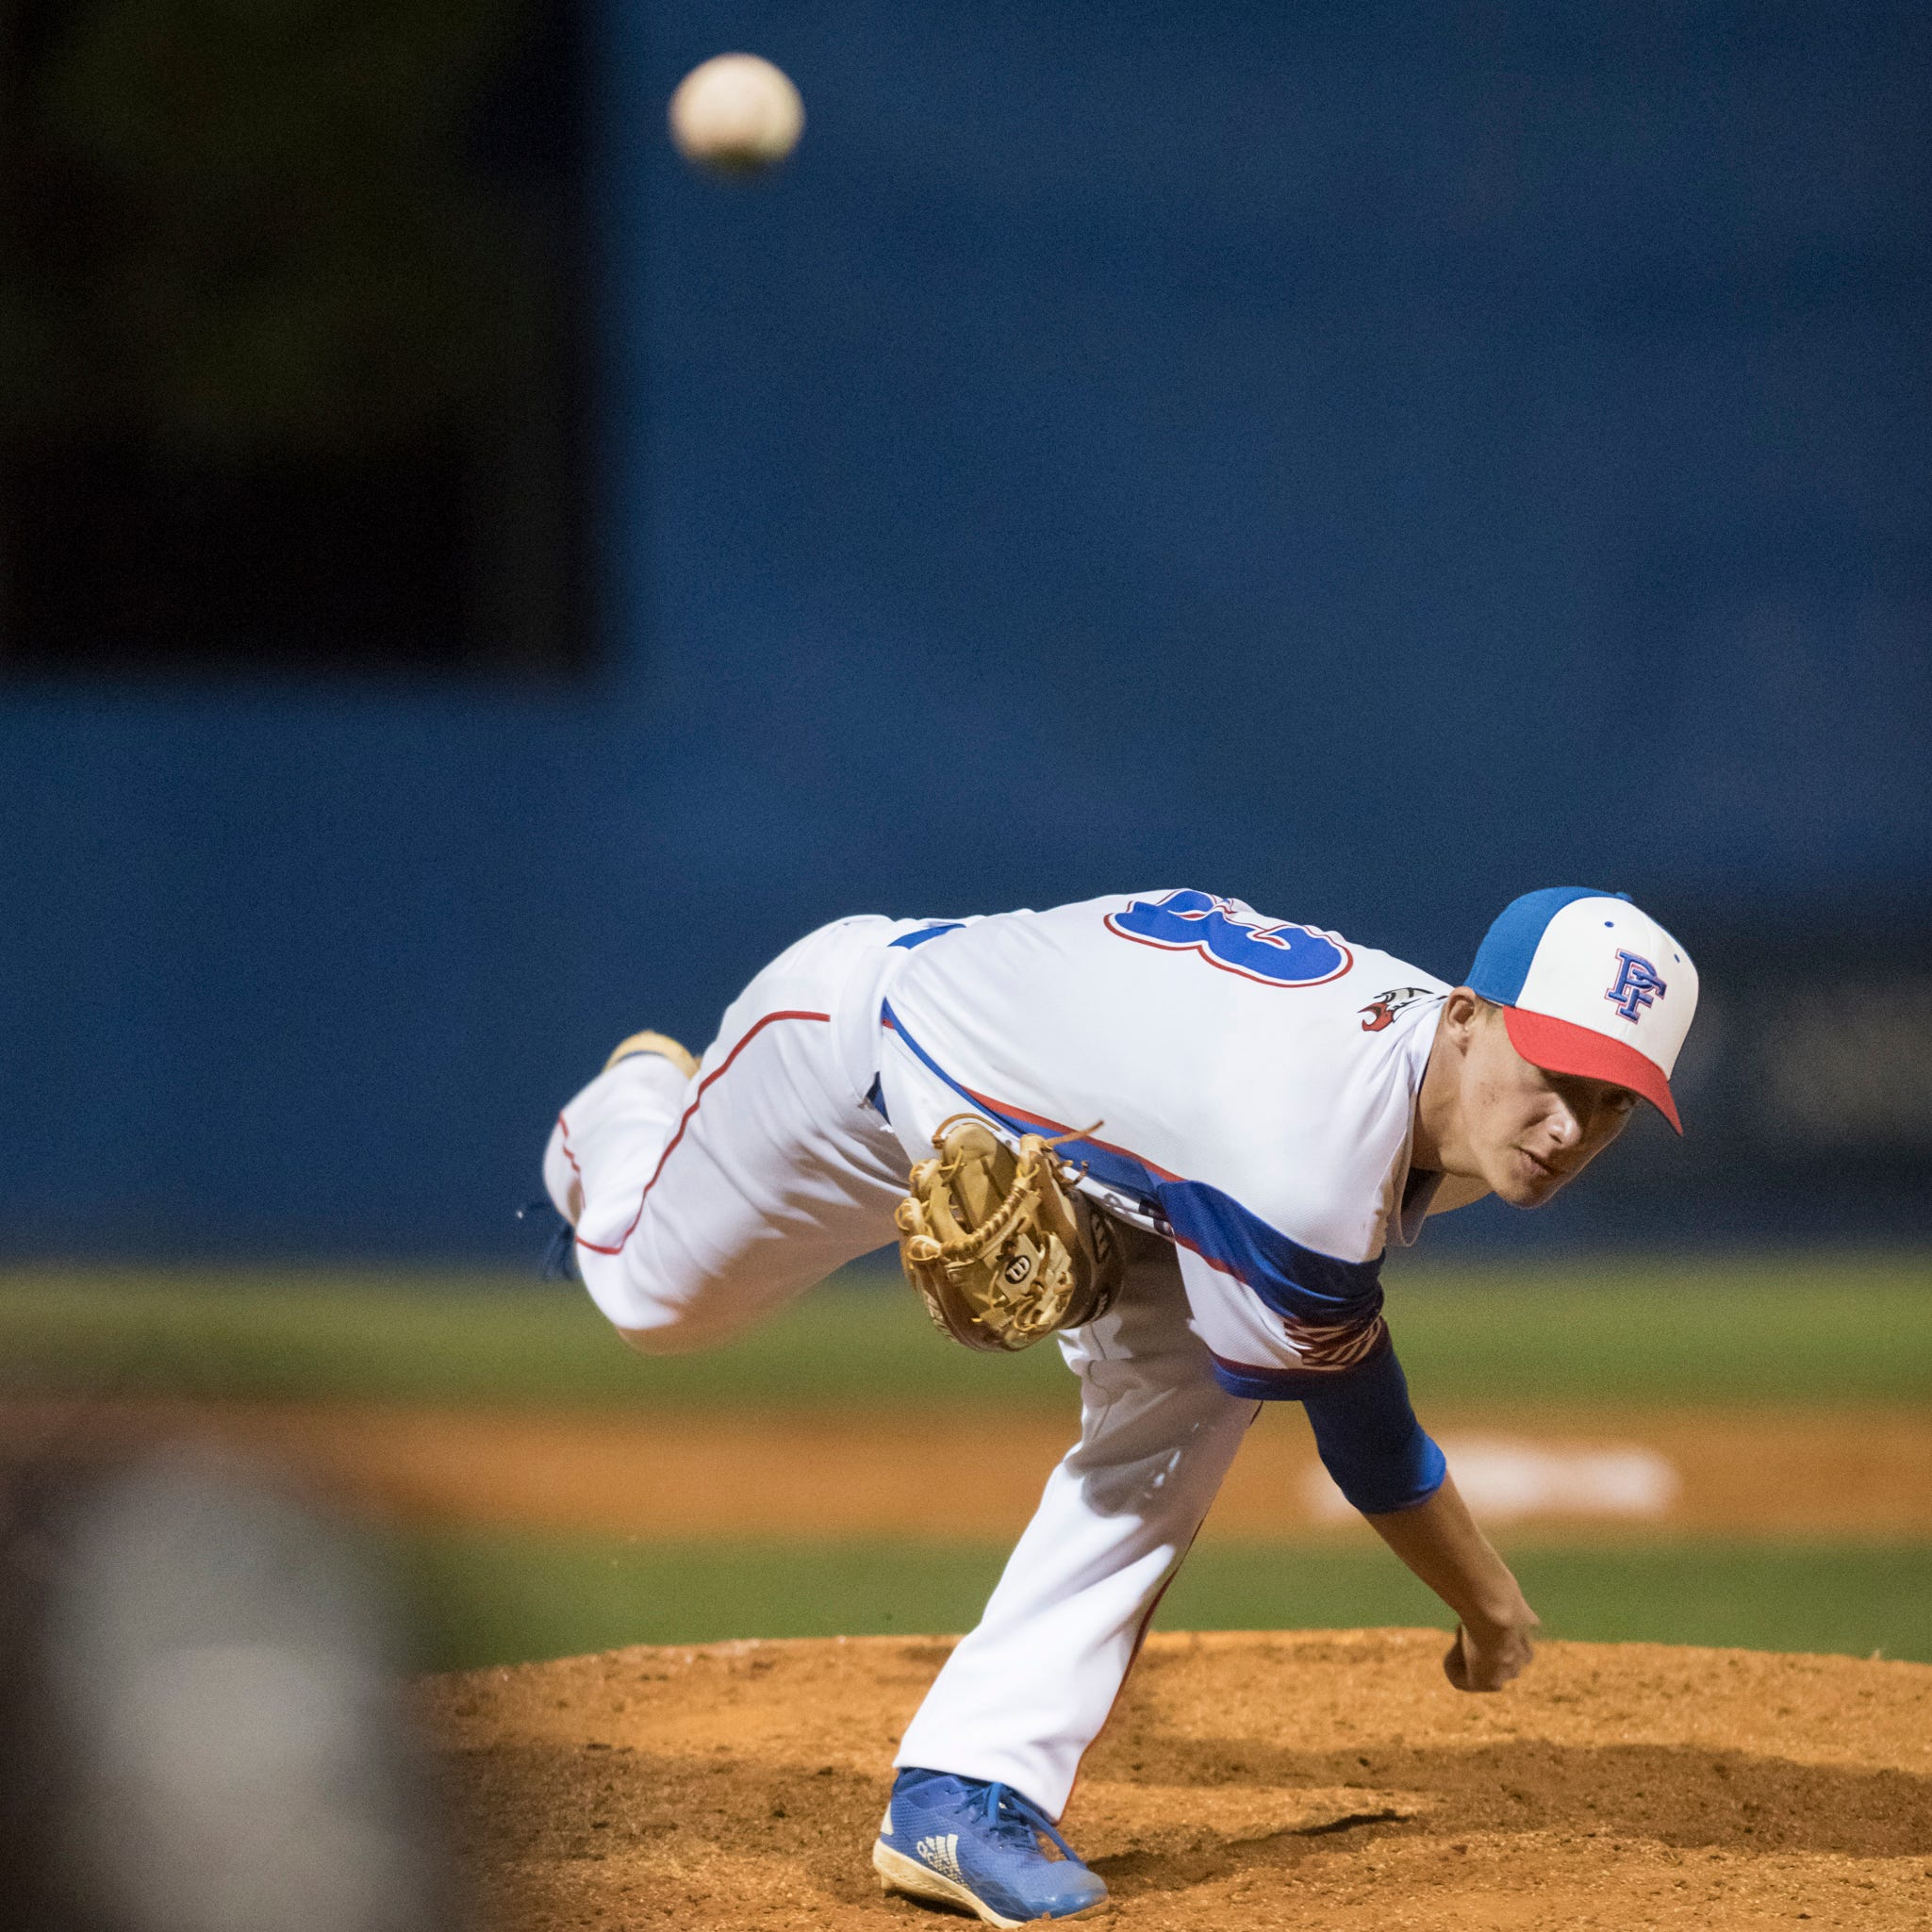 PNJ Baseball Leaderboard: Local leaders in homers, strikeouts and more